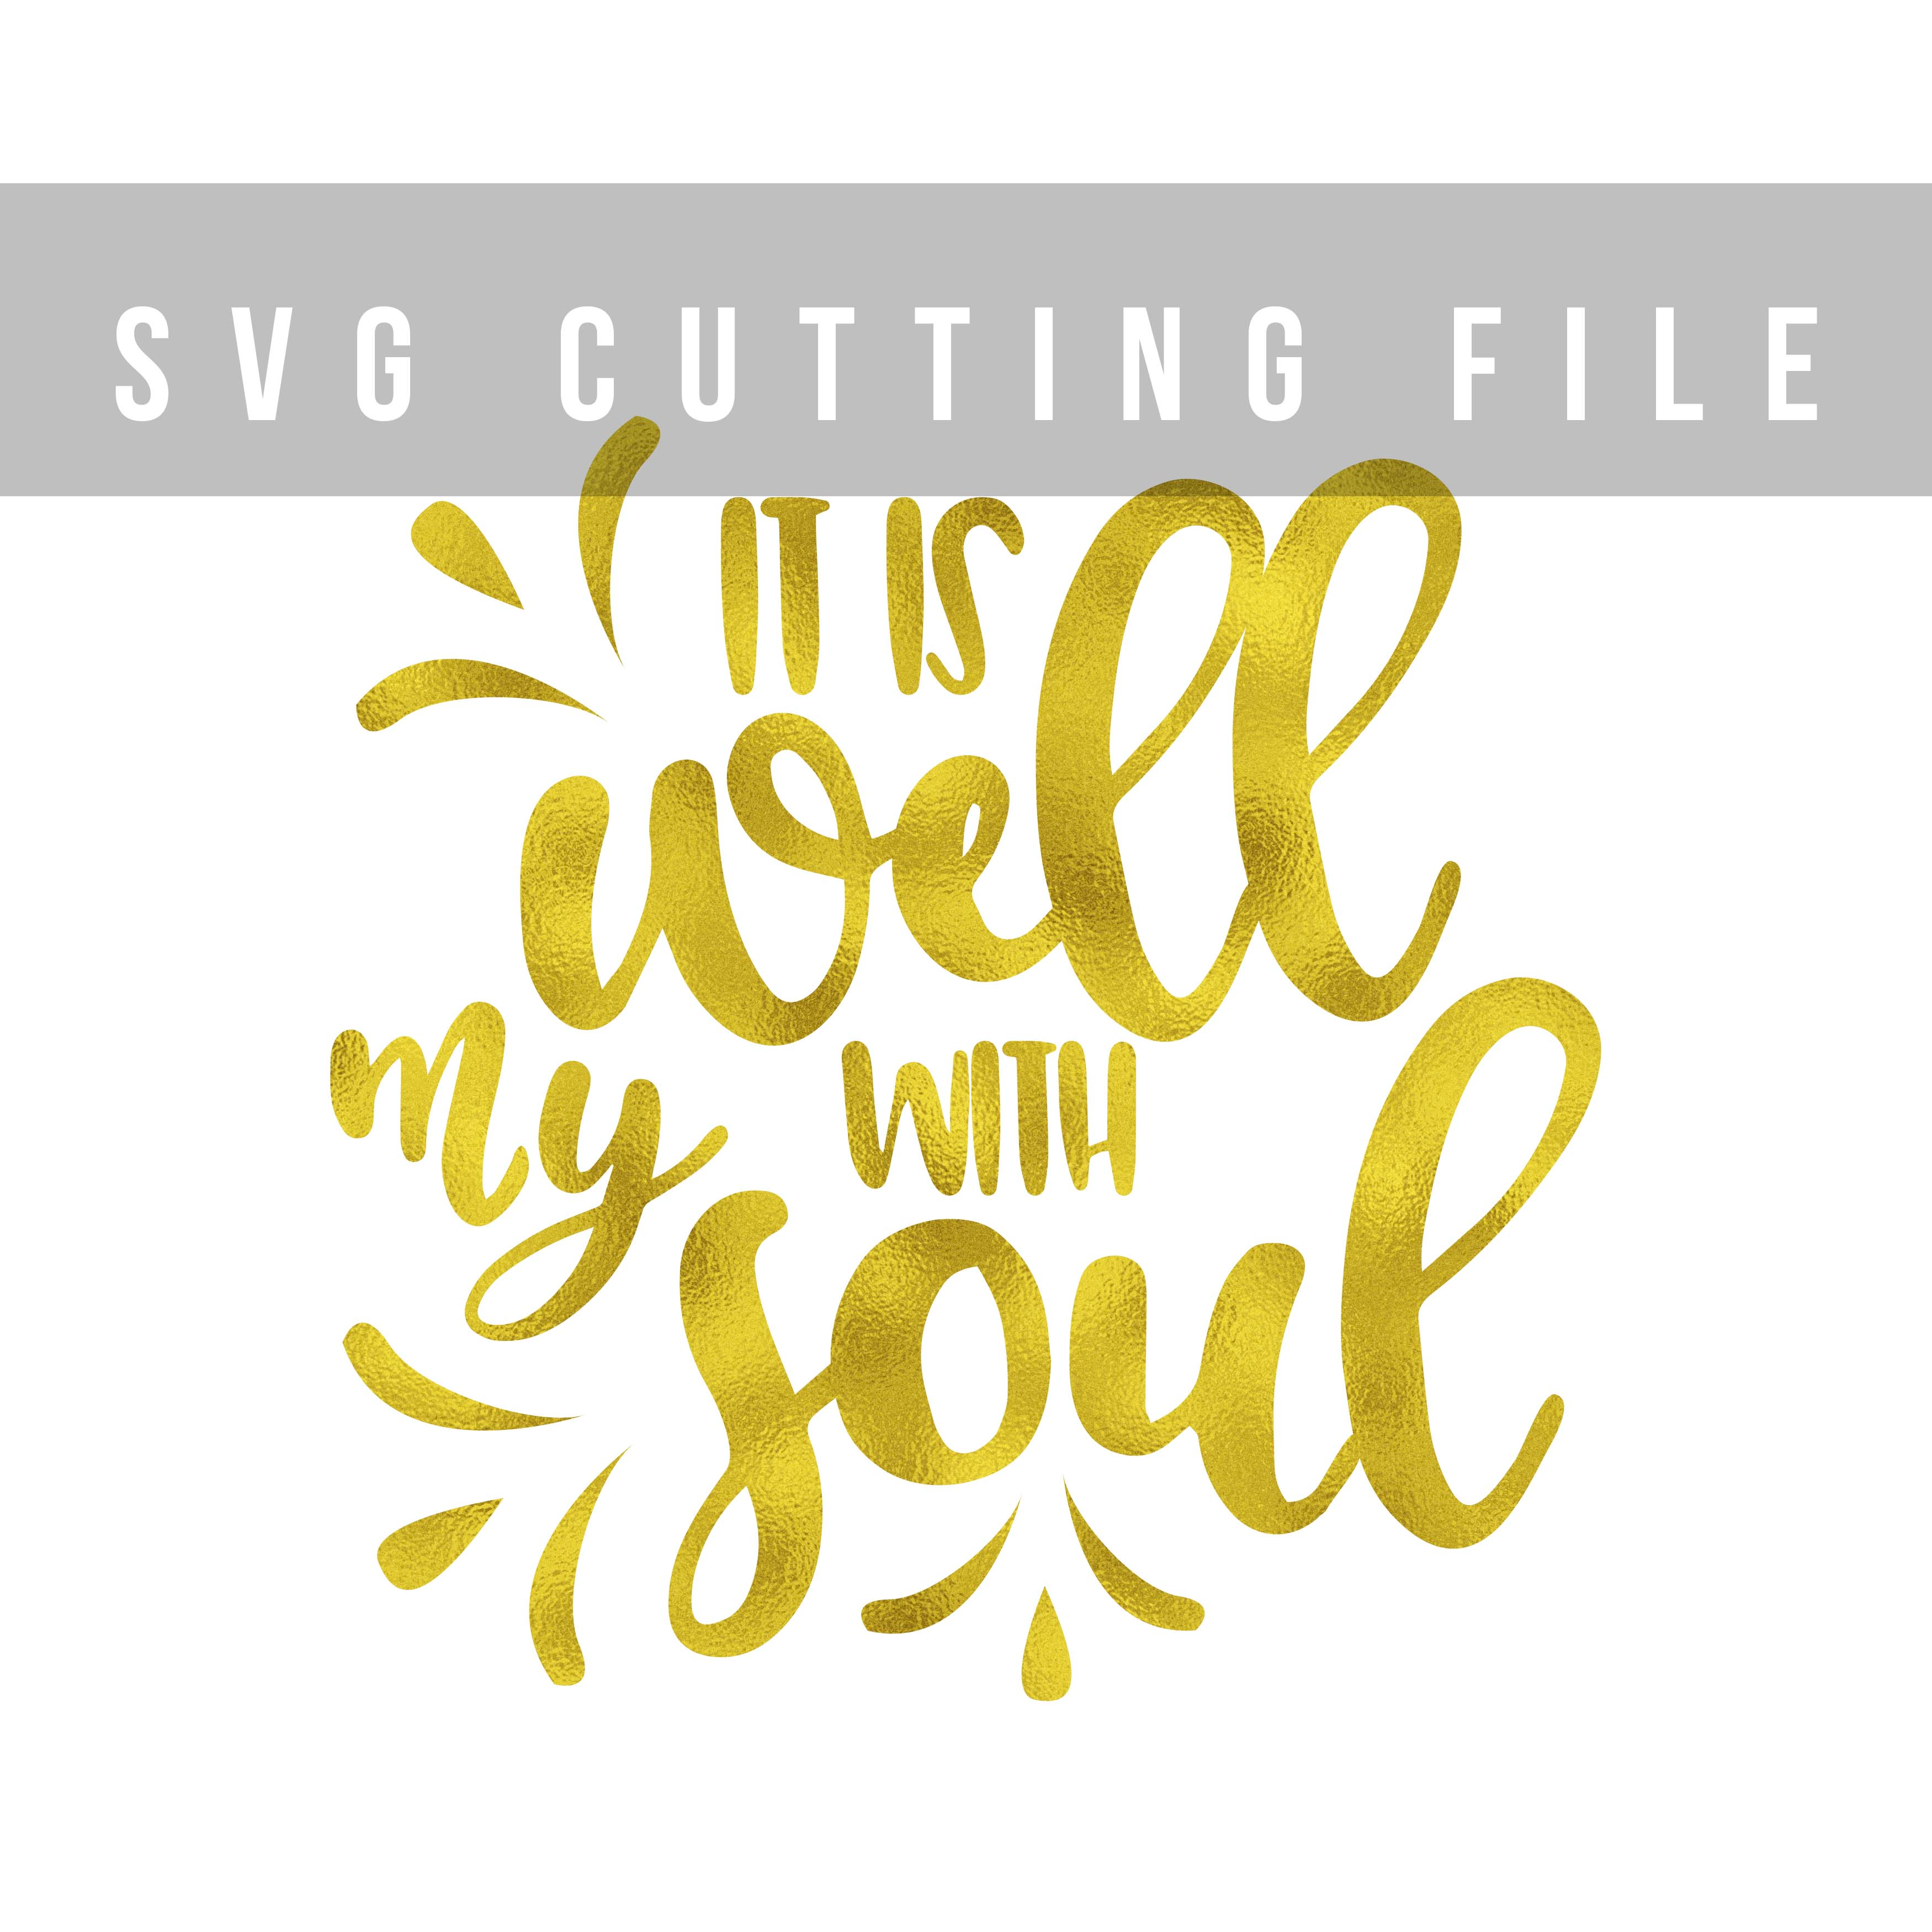 It is well with my soul SVG PNG EPS DXF, Bible verse SVG design example image 2